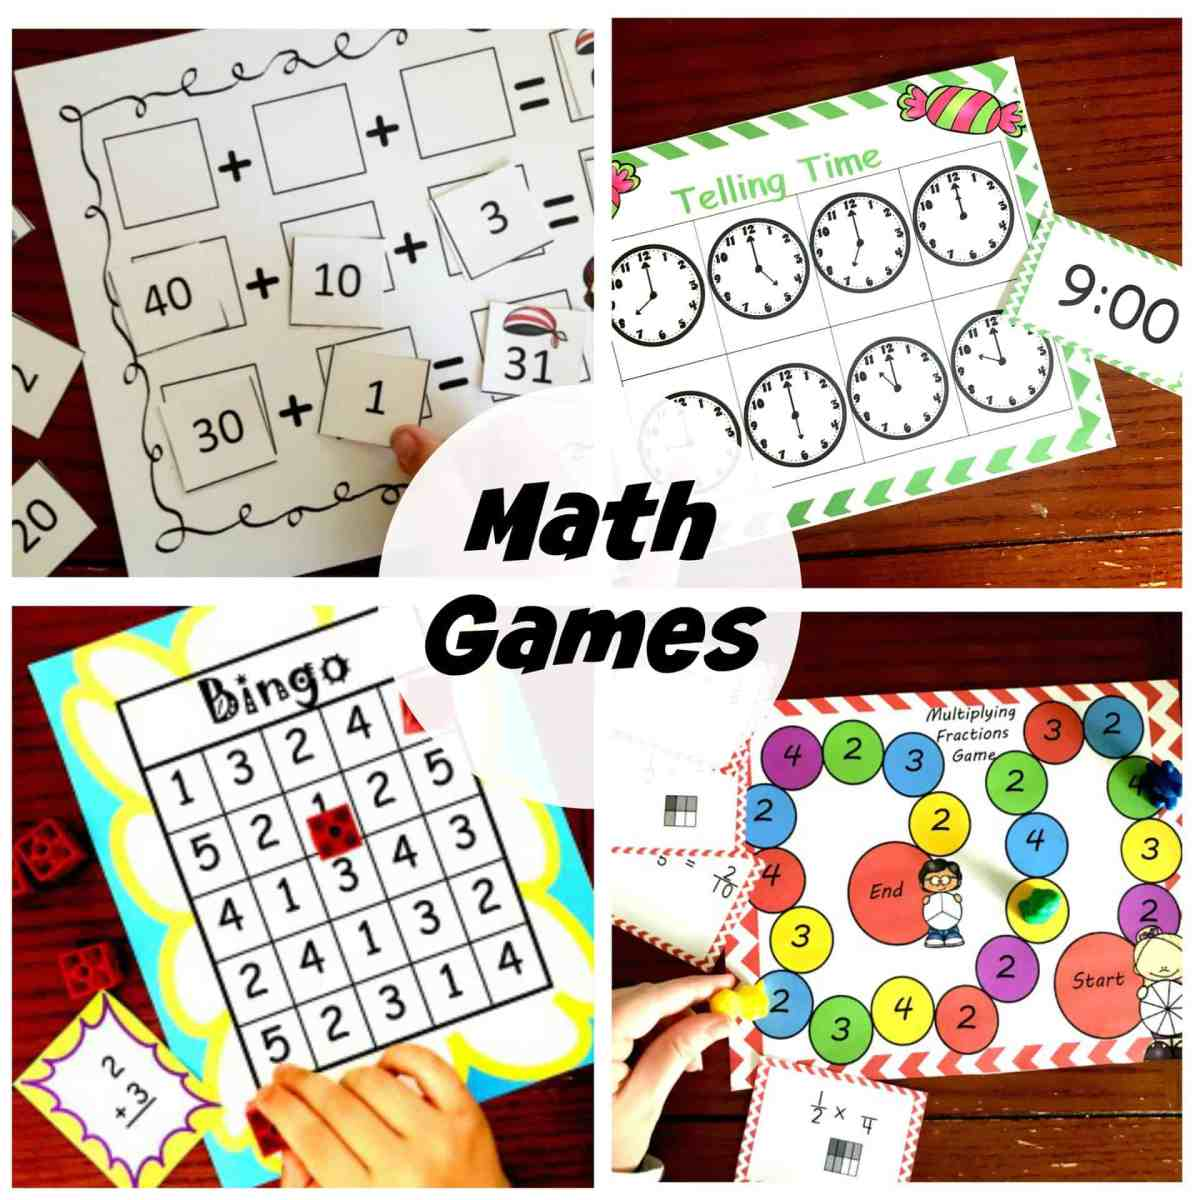 30 Easy Math Games to Help Make Math Time Fun